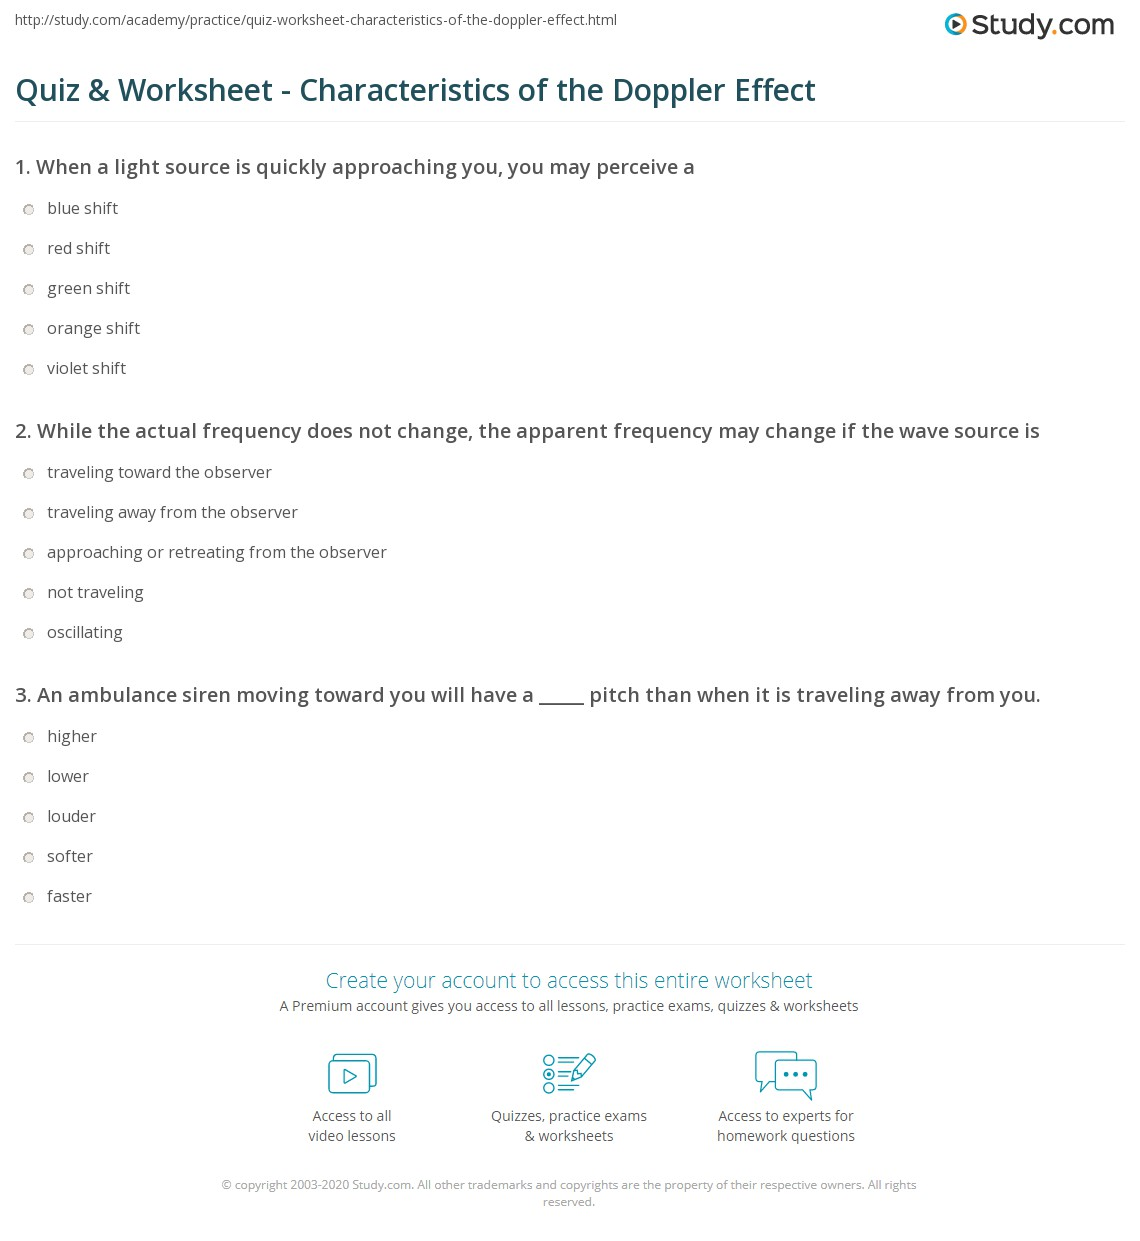 Worksheets Doppler Effect Worksheet quiz worksheet characteristics of the doppler effect study com print definition examples applications worksheet